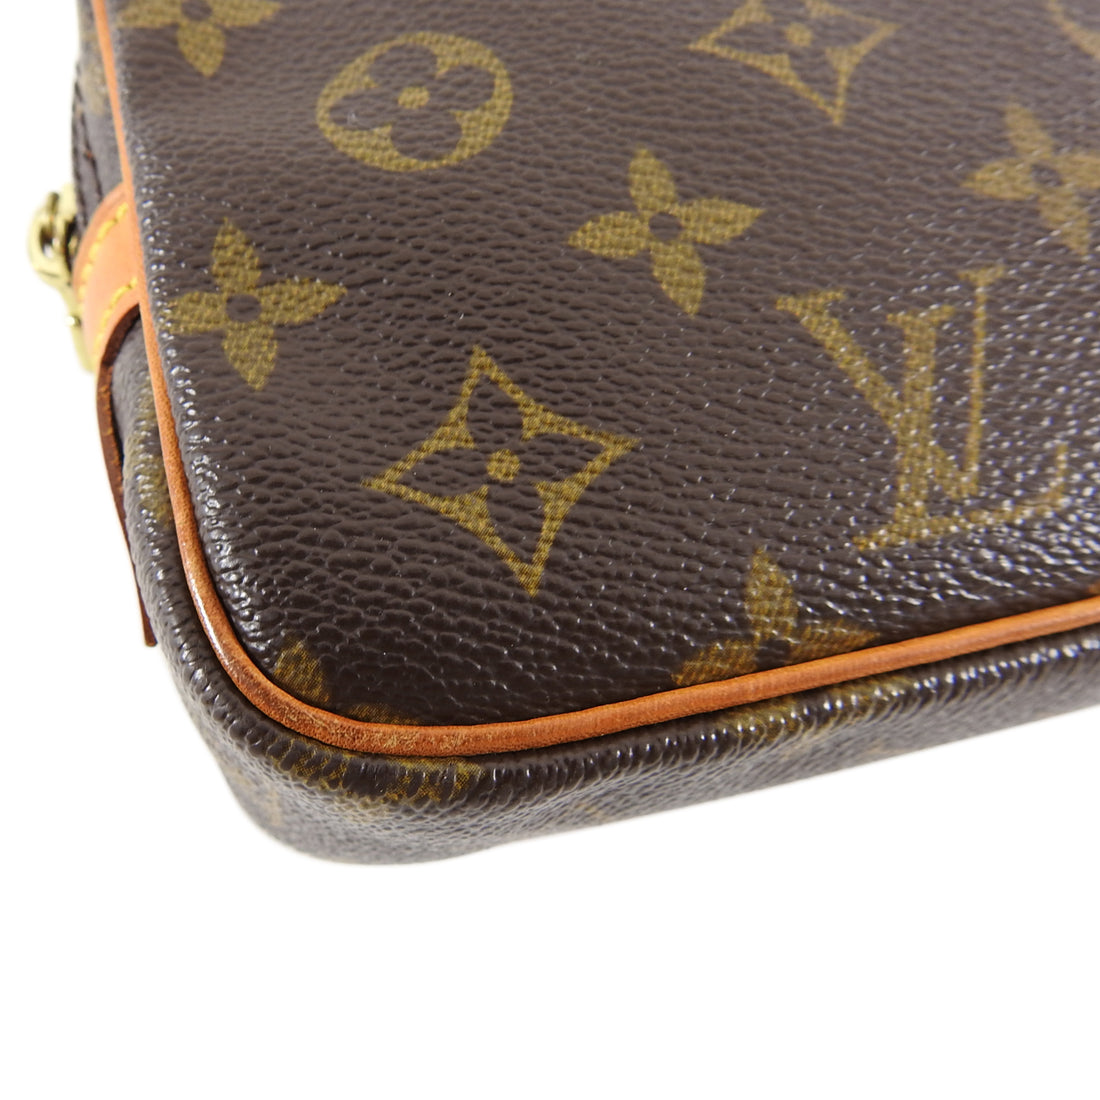 Louis Vuitton Marly Bandouliere Monogram Crossbody Bag